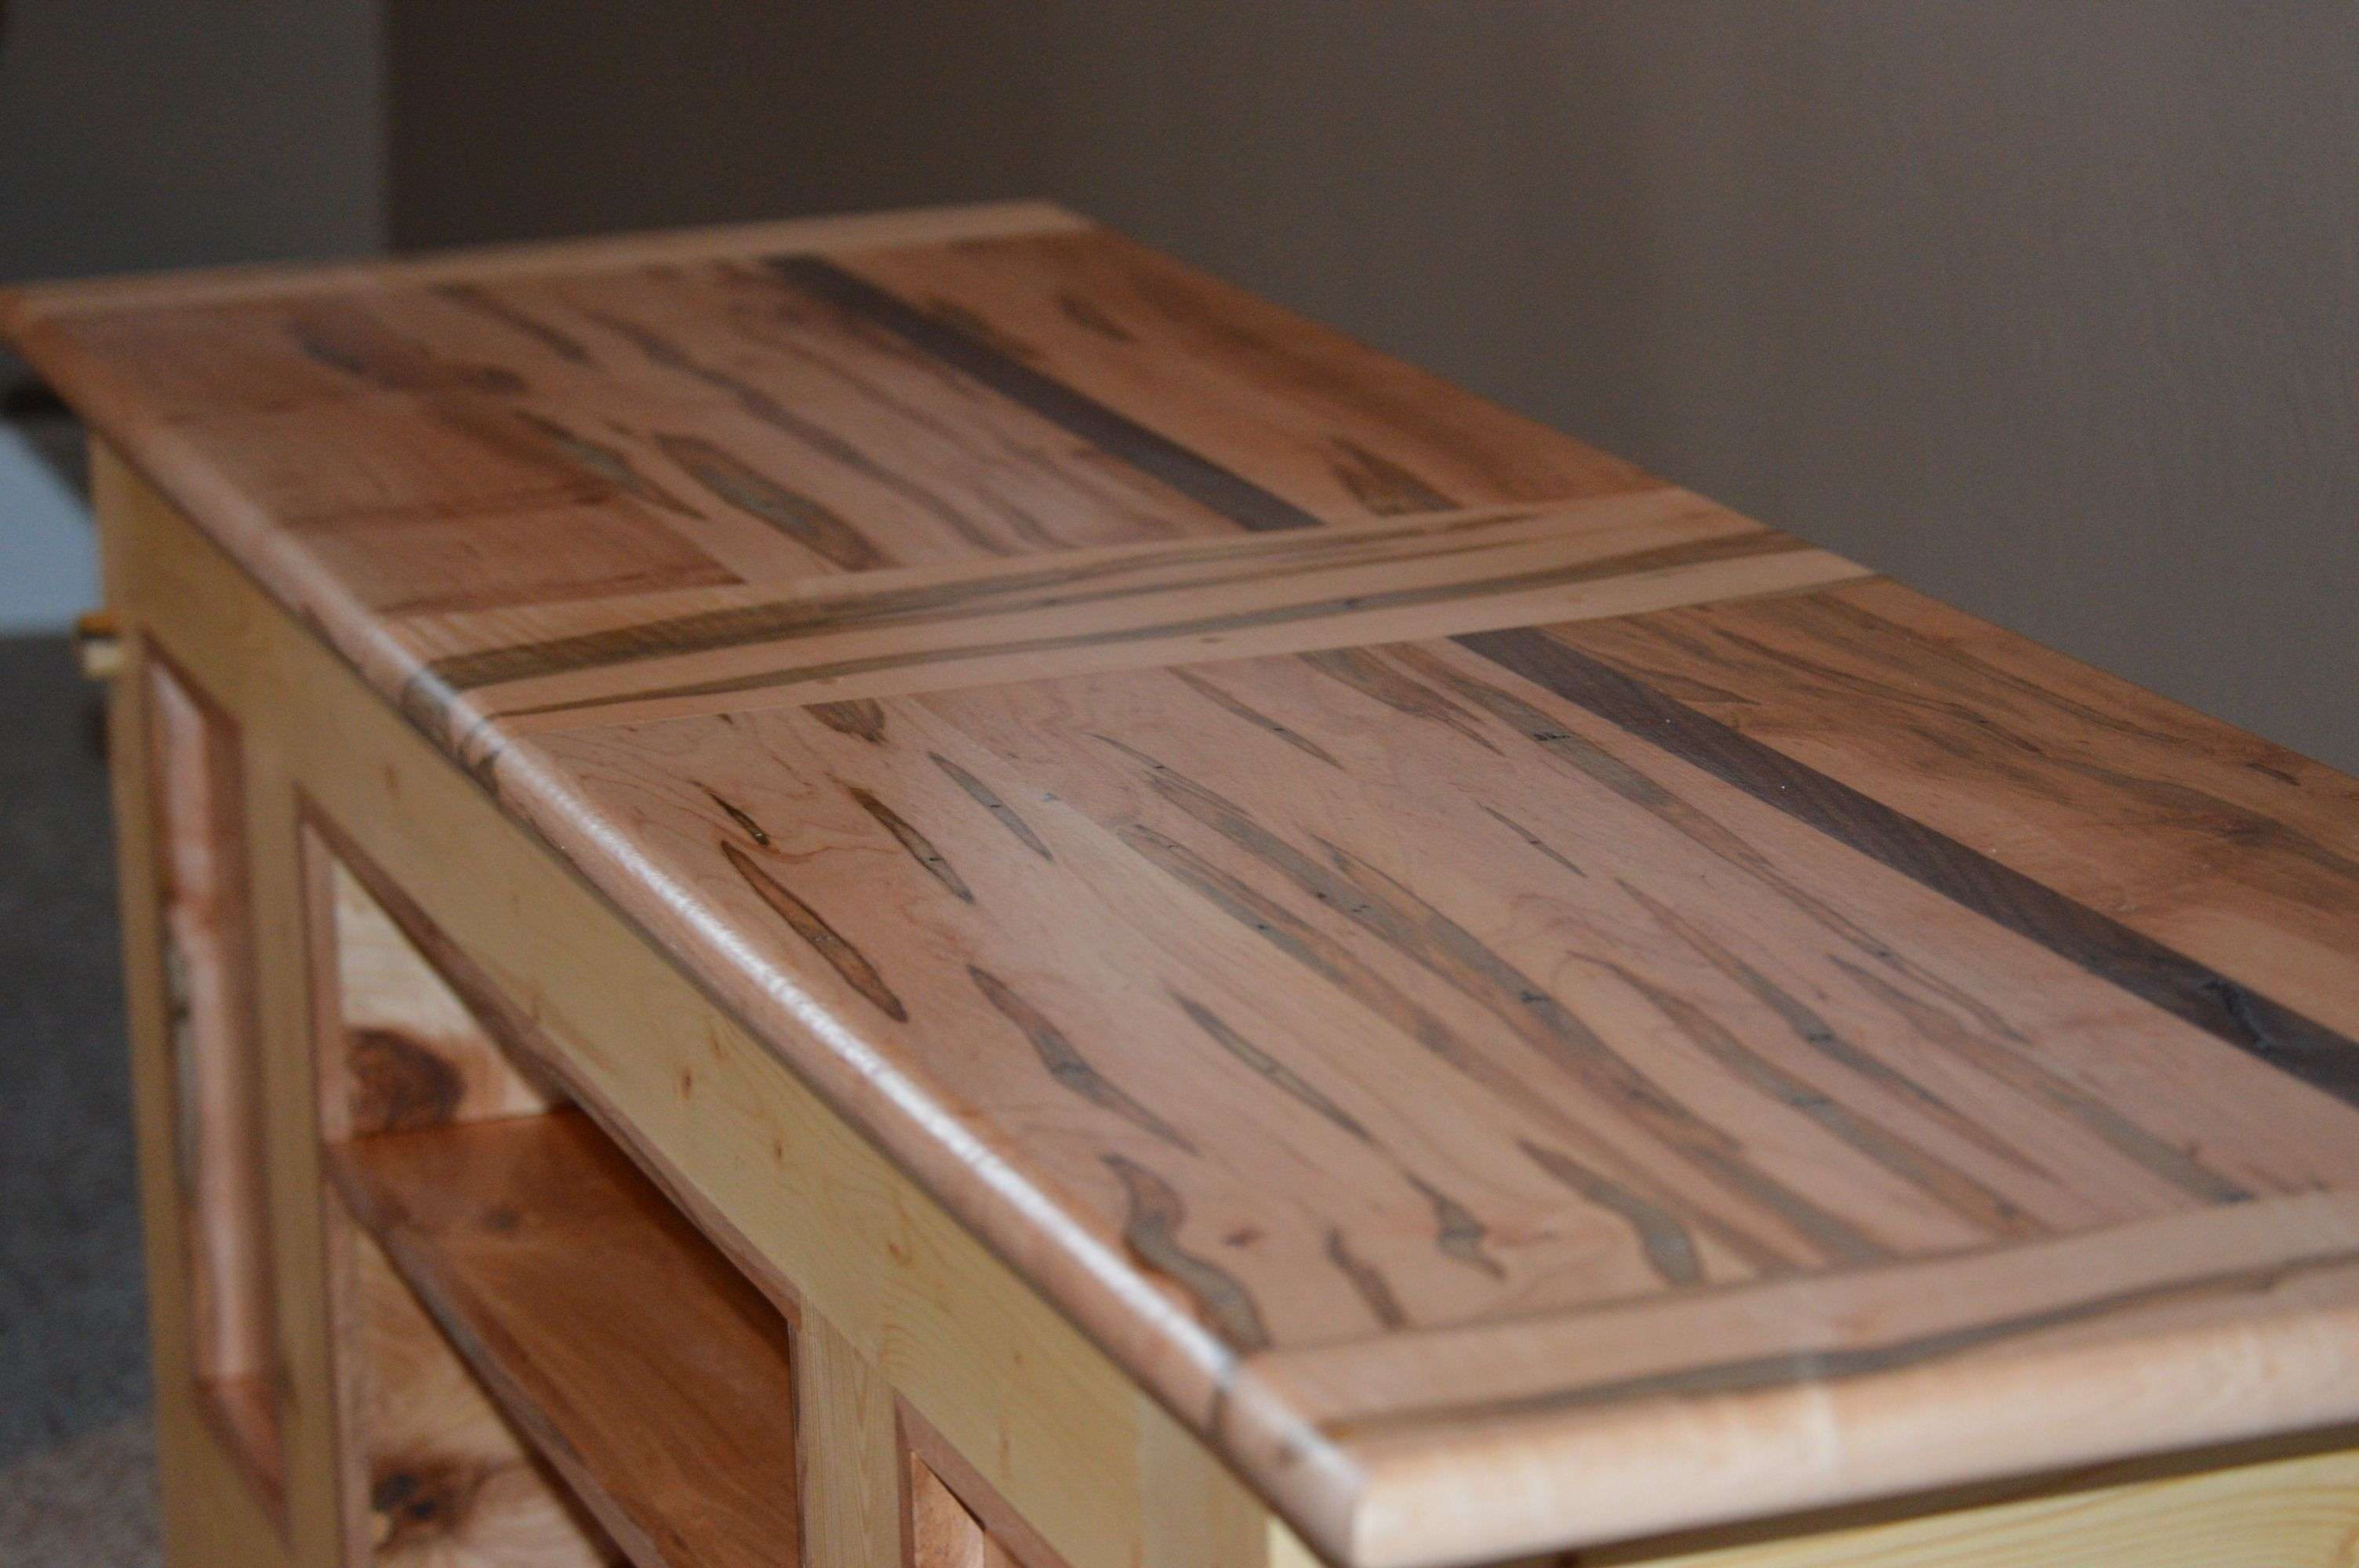 Hand Made Ambrosia / Wormy Maple And Pine Tv Stand / Coffee Table Regarding Maple Wood Tv Stands (View 15 of 15)